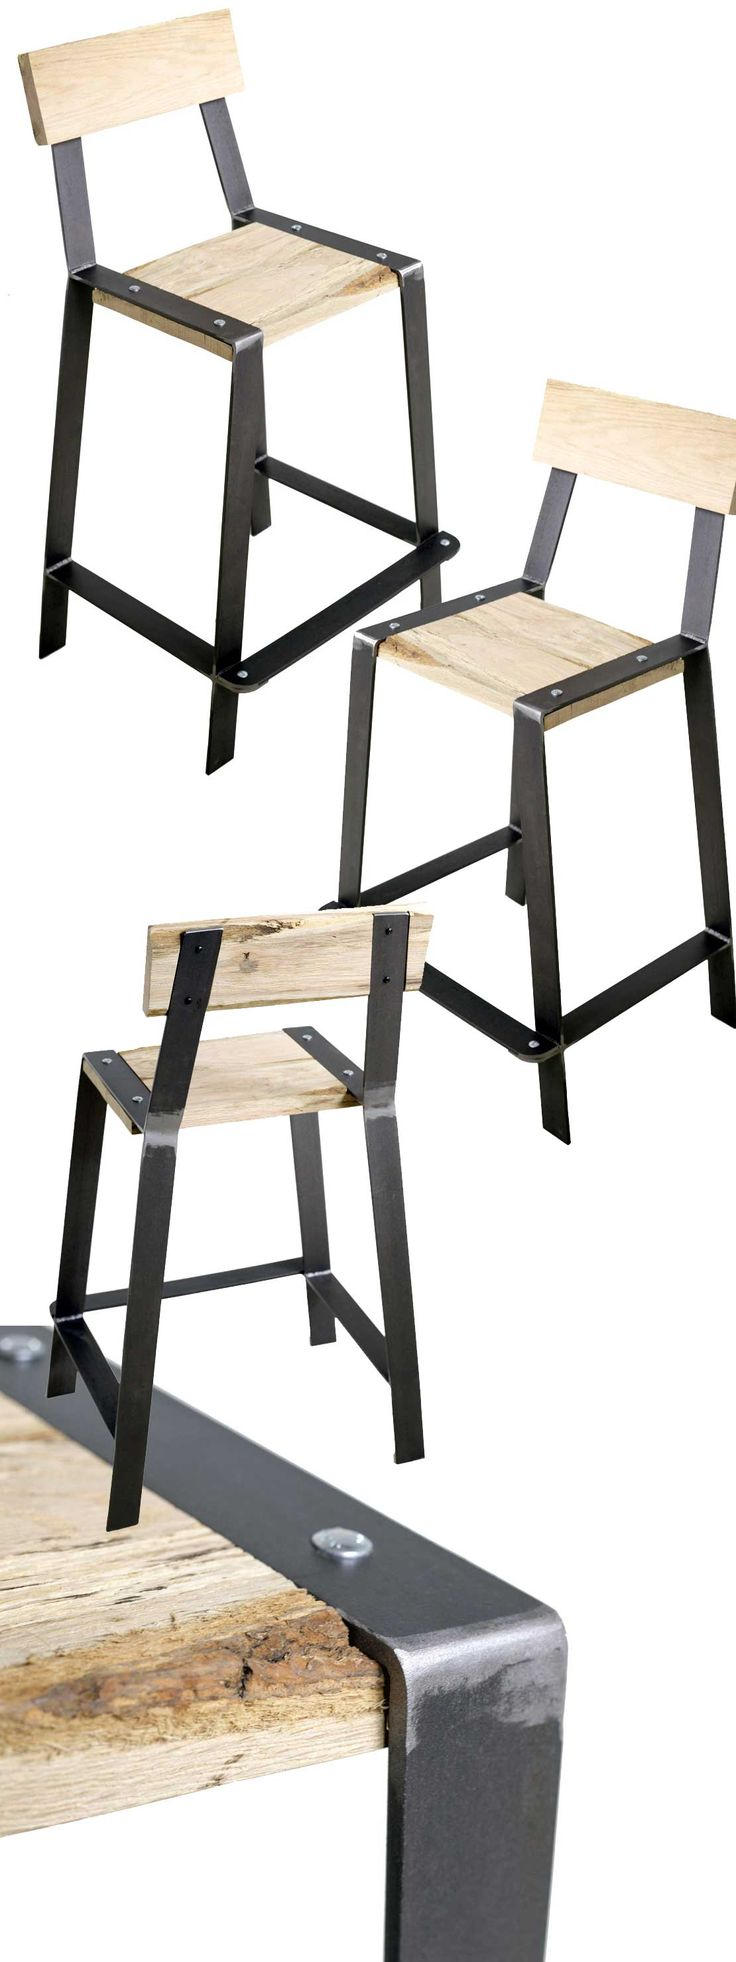 "It's as comfortable as it is stylish! At home in contemporary and rustic environments, every piece is totally unique and starts with reclaimed ""slabs."" Find the Urban Forge Counter Stool as seen in the counter stool collection at http://www.timelesswroughtiron.com/Urban-Forge-25-inch-Iron-Barstool-p/twi-sci-980-236-25in.htm"